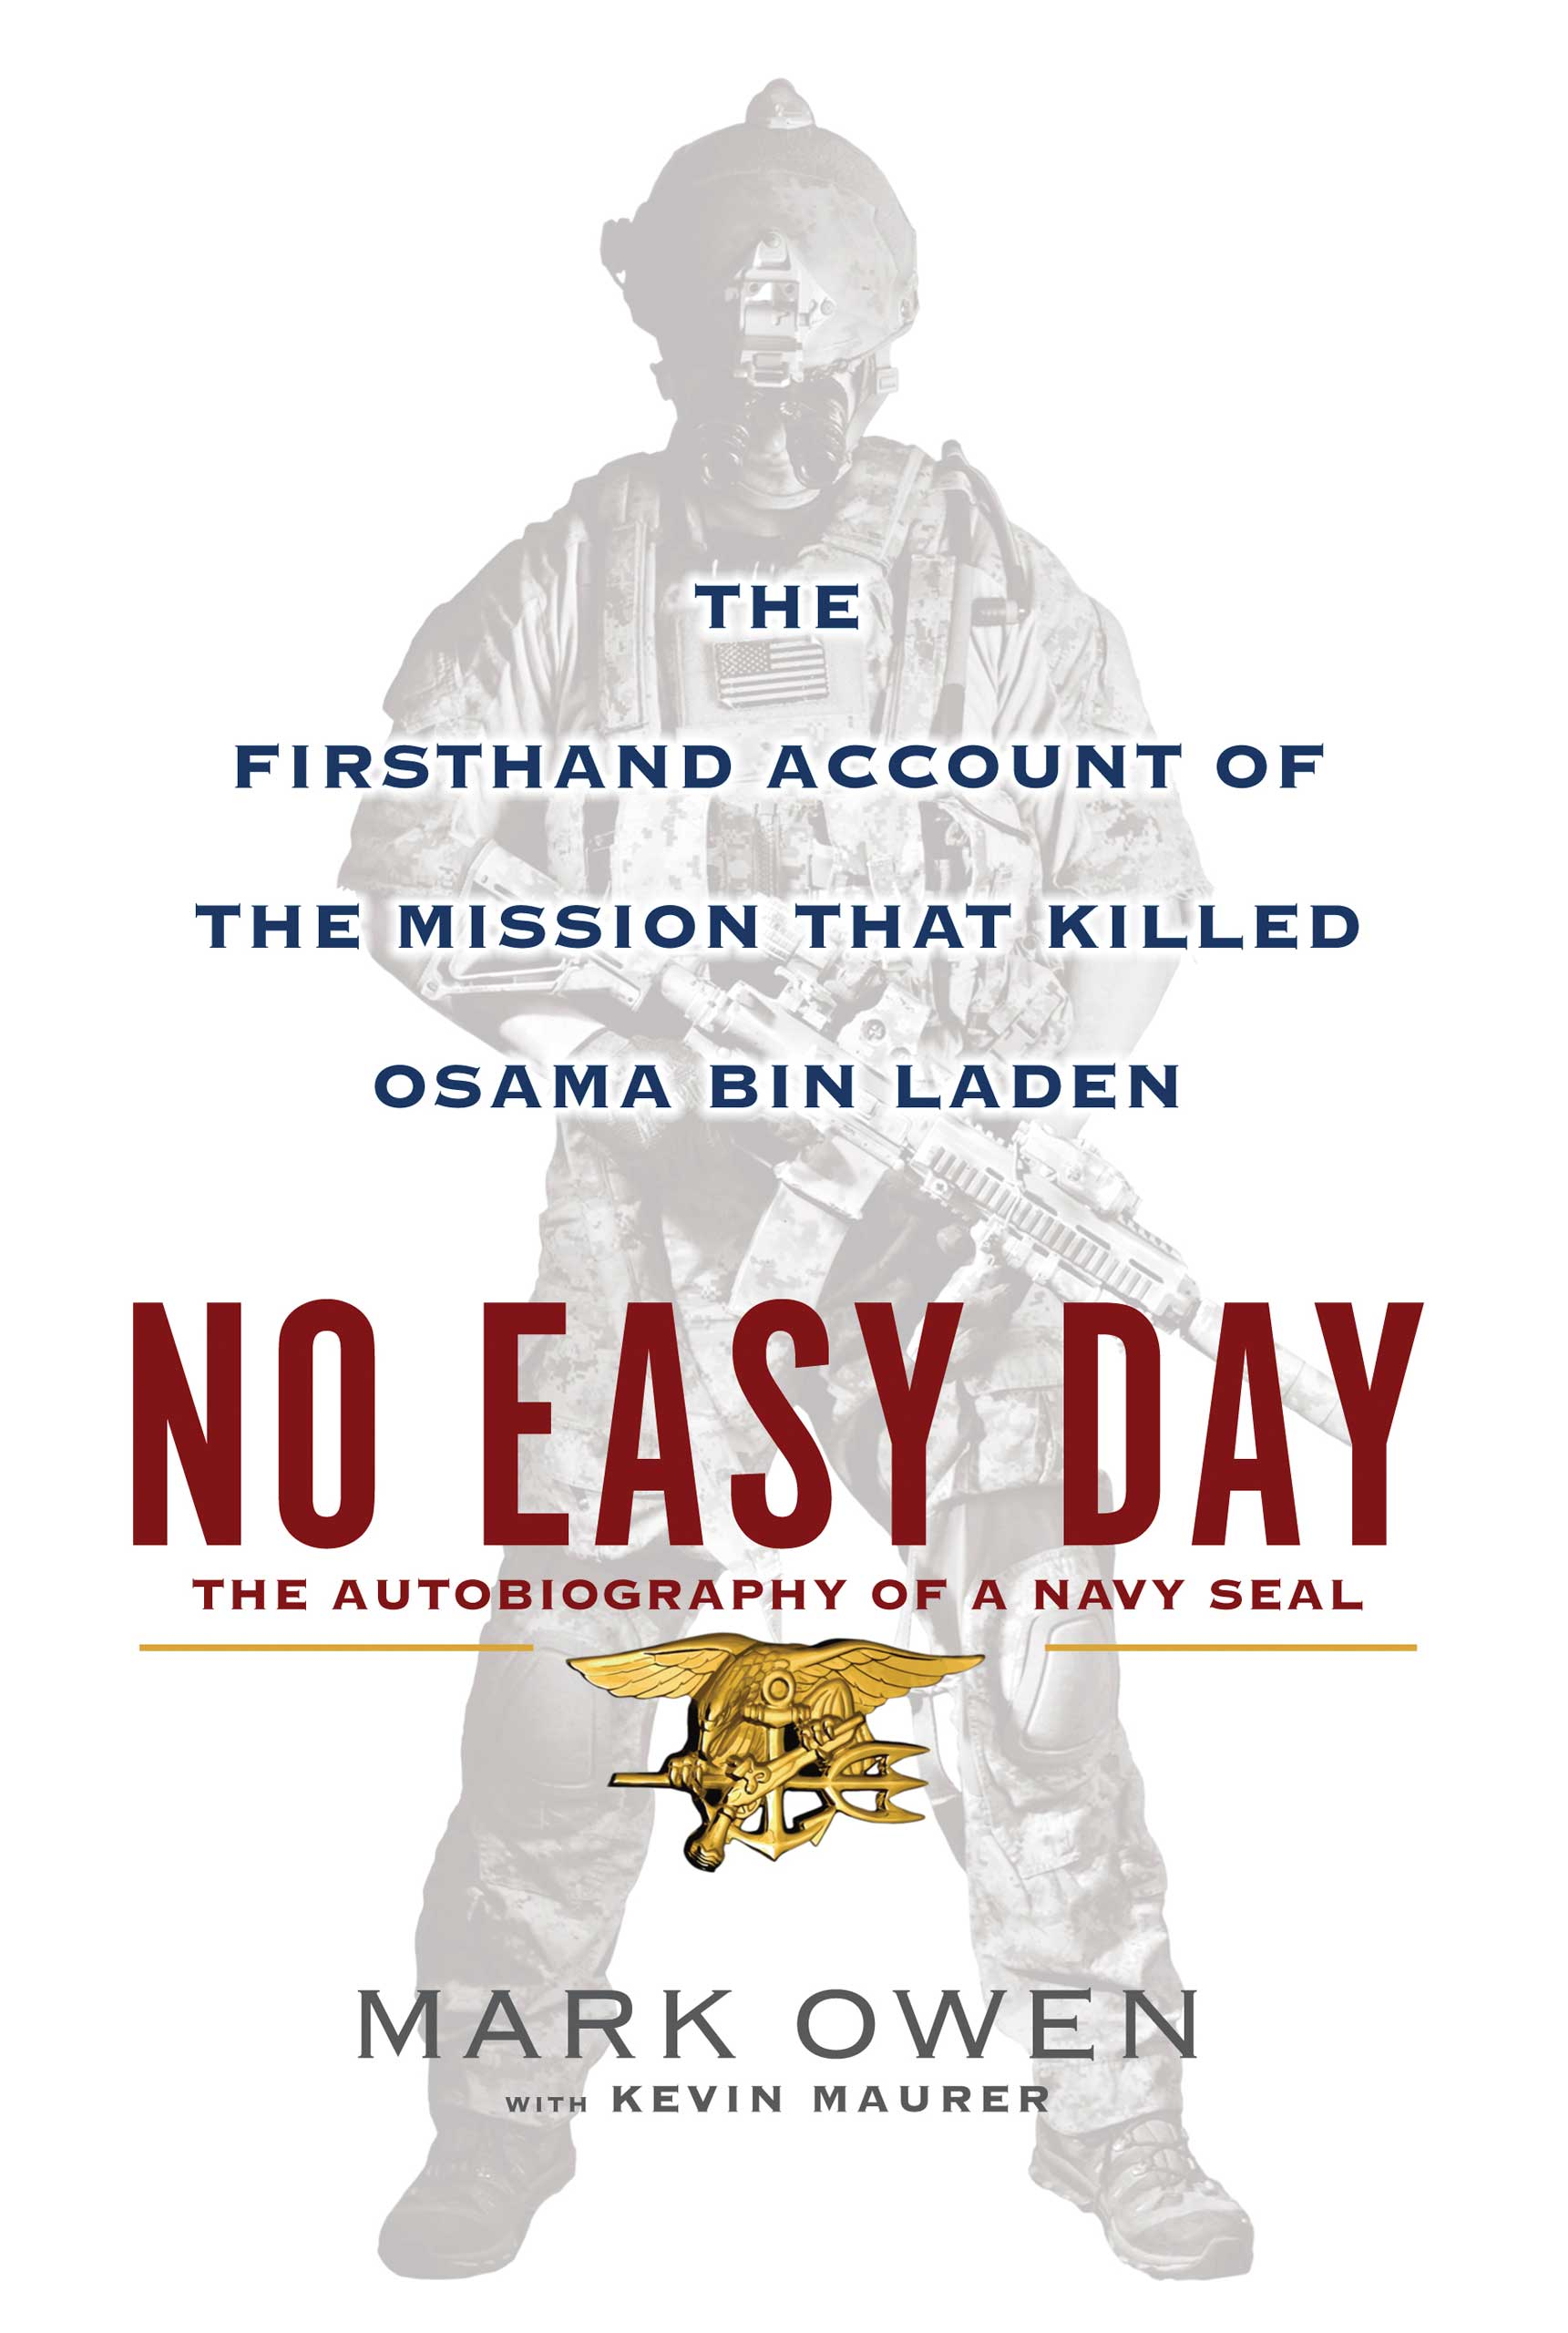 No Easy Day: The Firsthand Account of the Mission that Killed Osama Bin Laden,  by Mark Owen with Kevin Maurer.